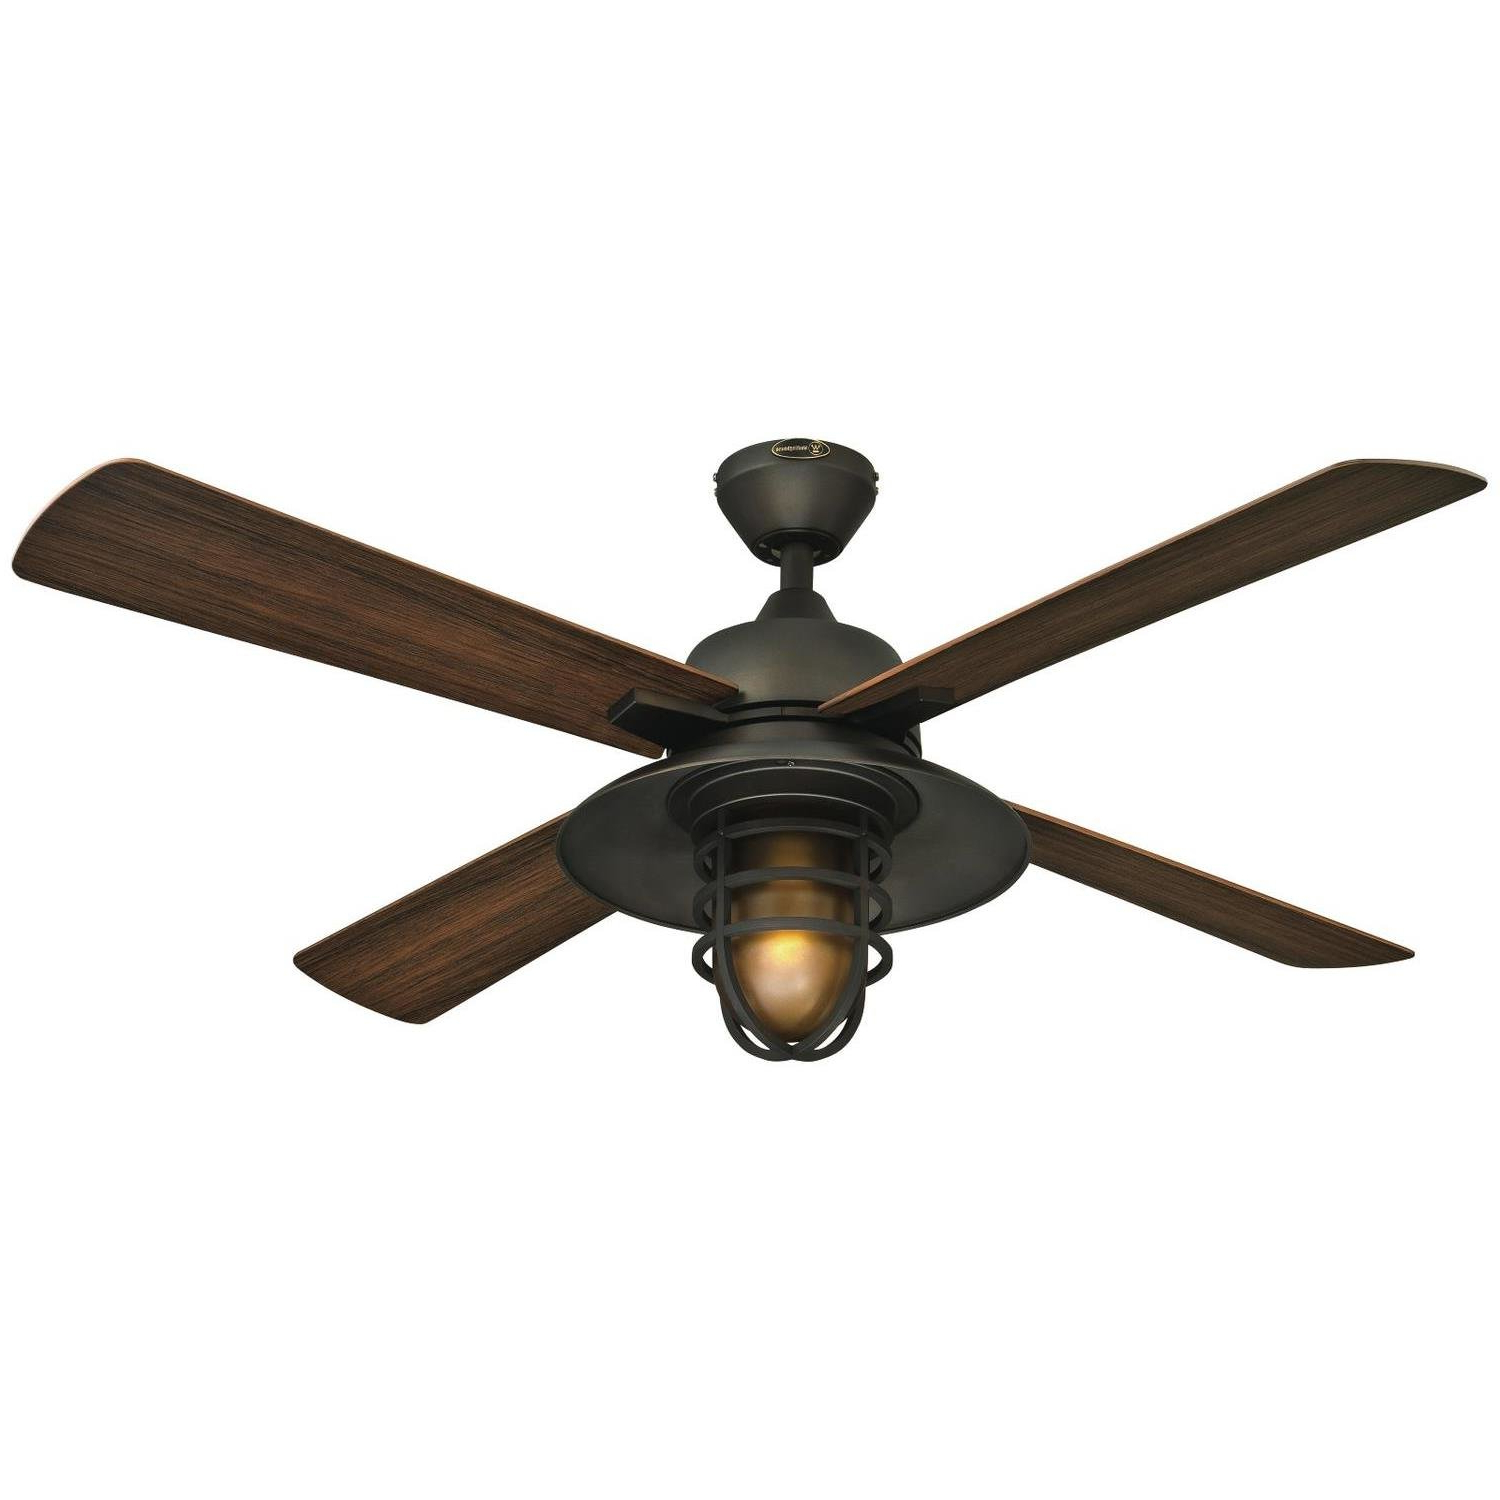 "52"" Barcus 4 Blade Ceiling Fan, Light Kit Included & Reviews Regarding 2020 Rainman 5 Blade Outdoor Ceiling Fans (Gallery 6 of 20)"